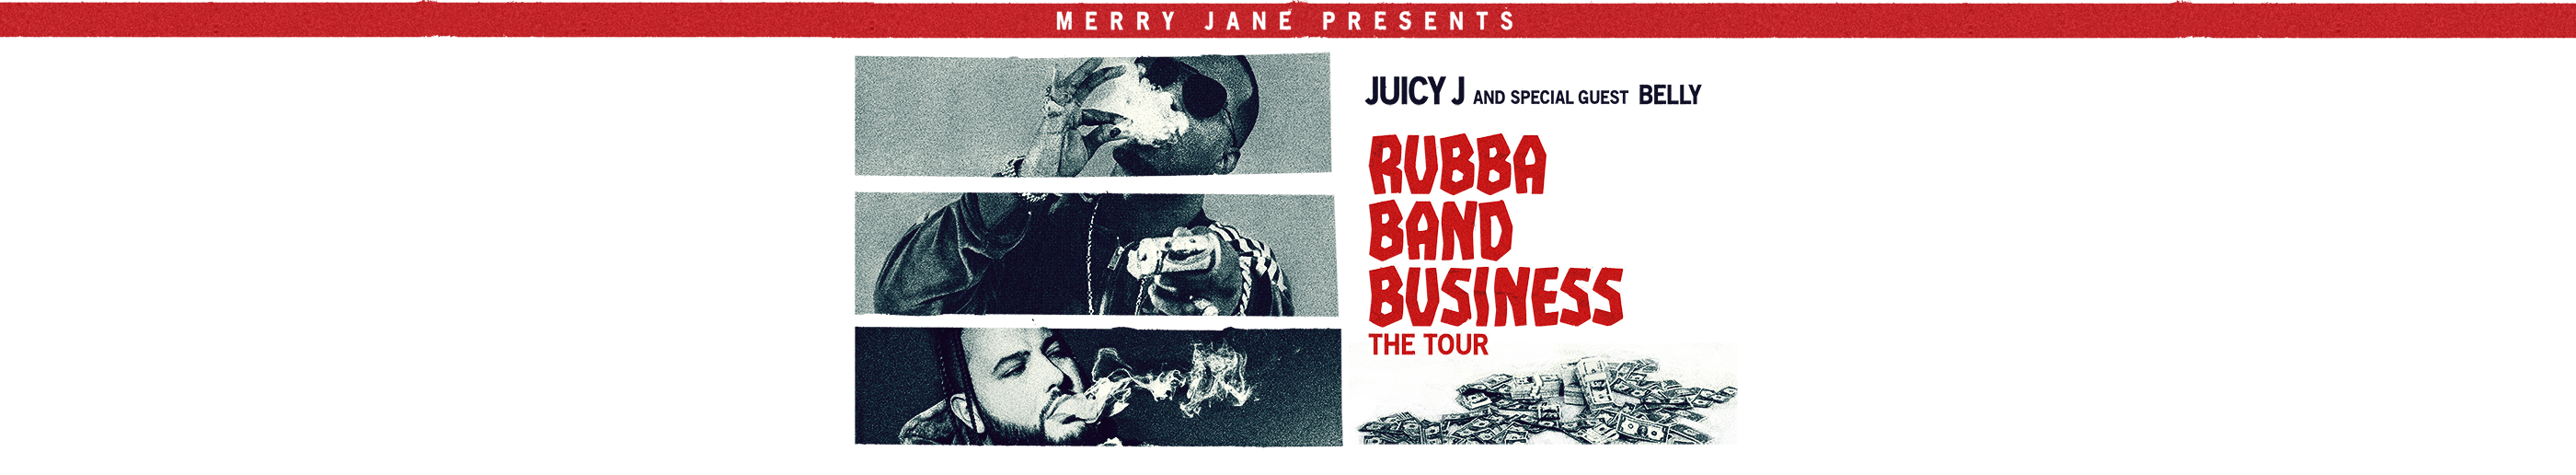 Juicy J Rubba Band Business: The Tour